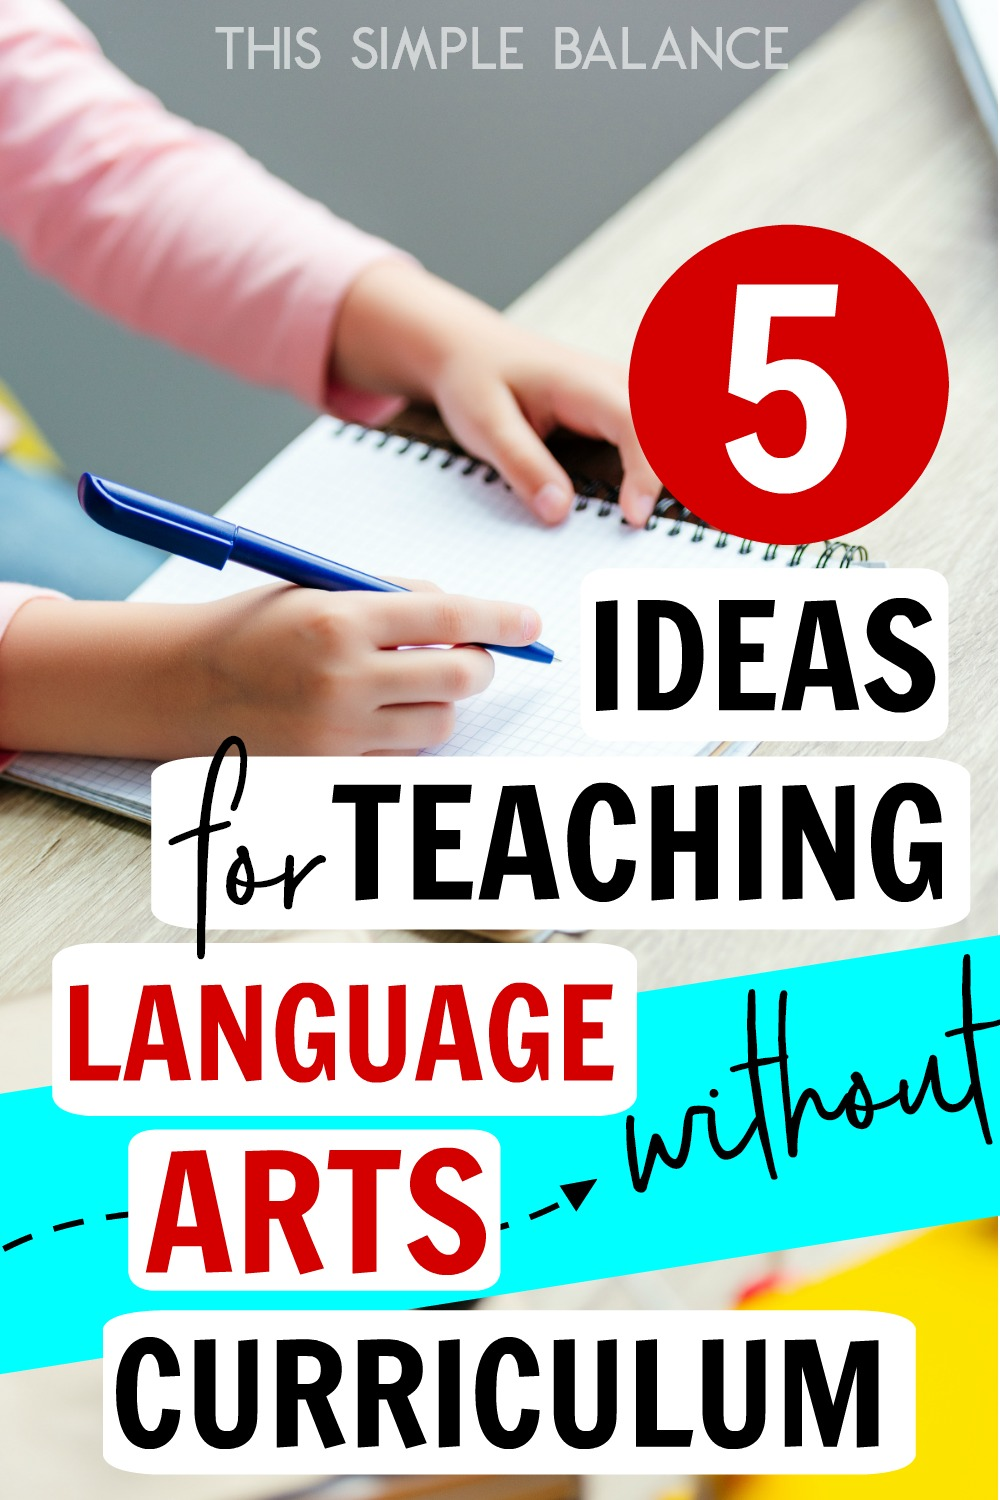 5 Ideas for Teaching Elementary Language Arts without Curriculum